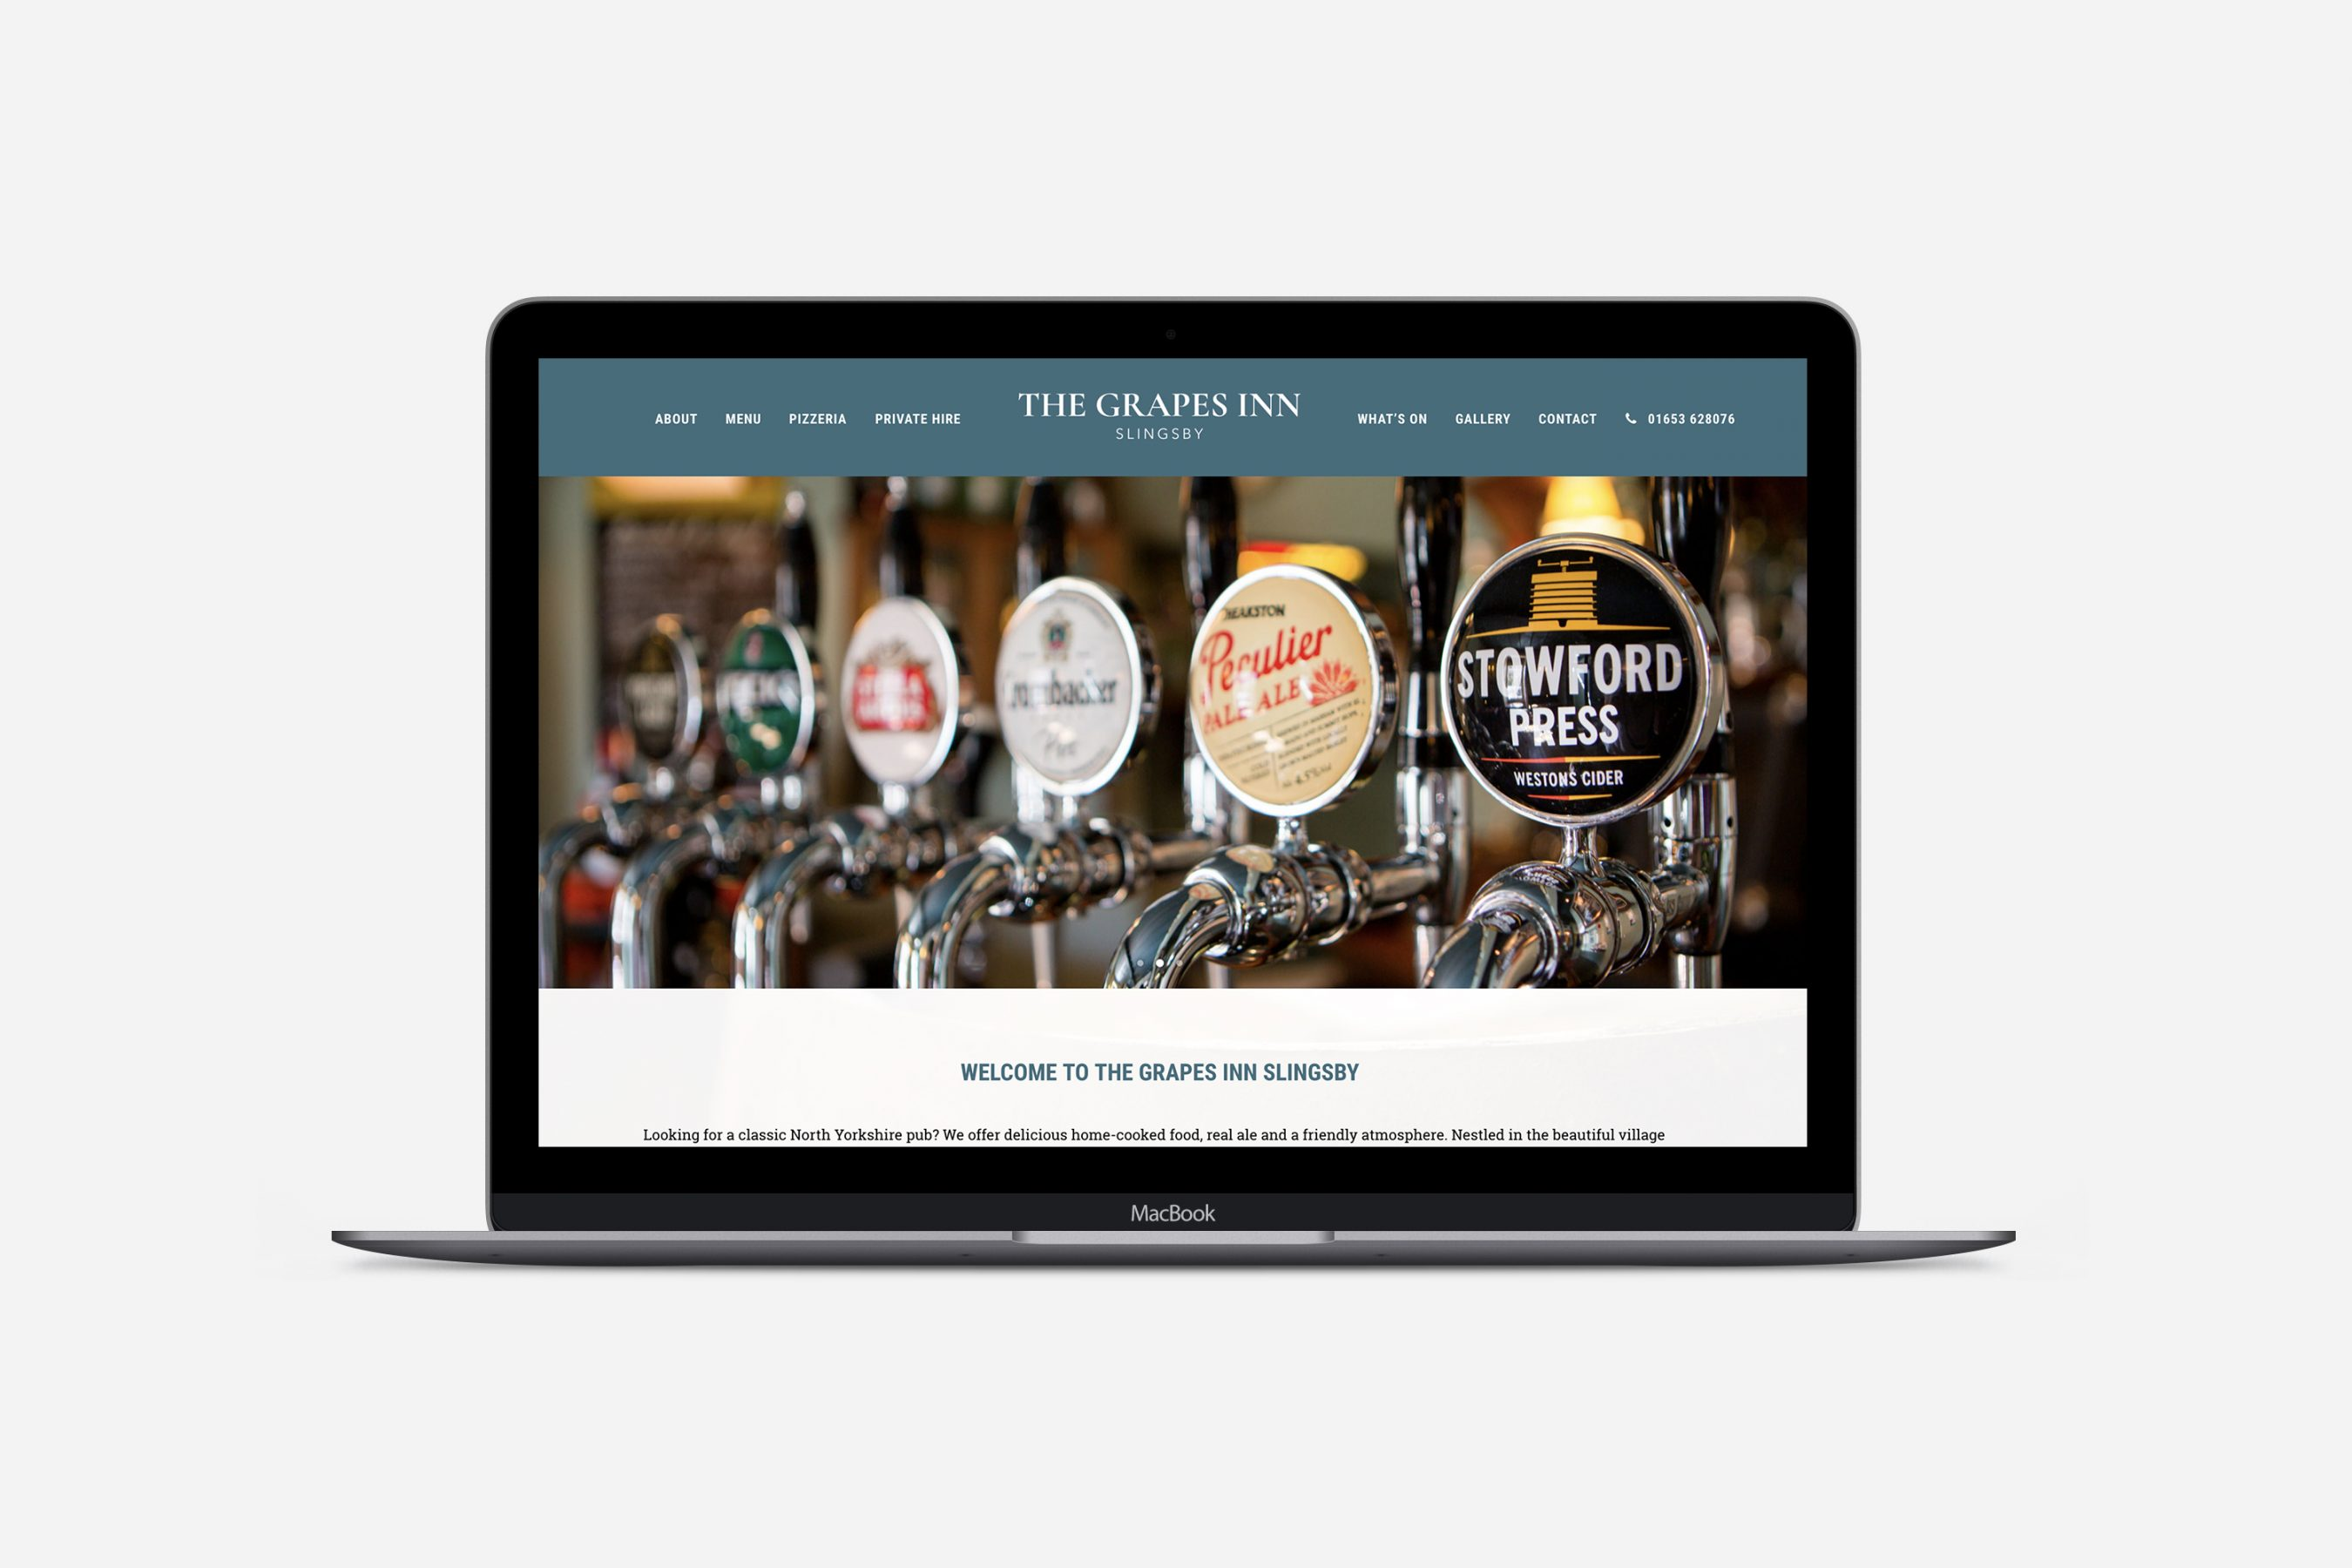 The Grapes Inn Slingsby Screenshot